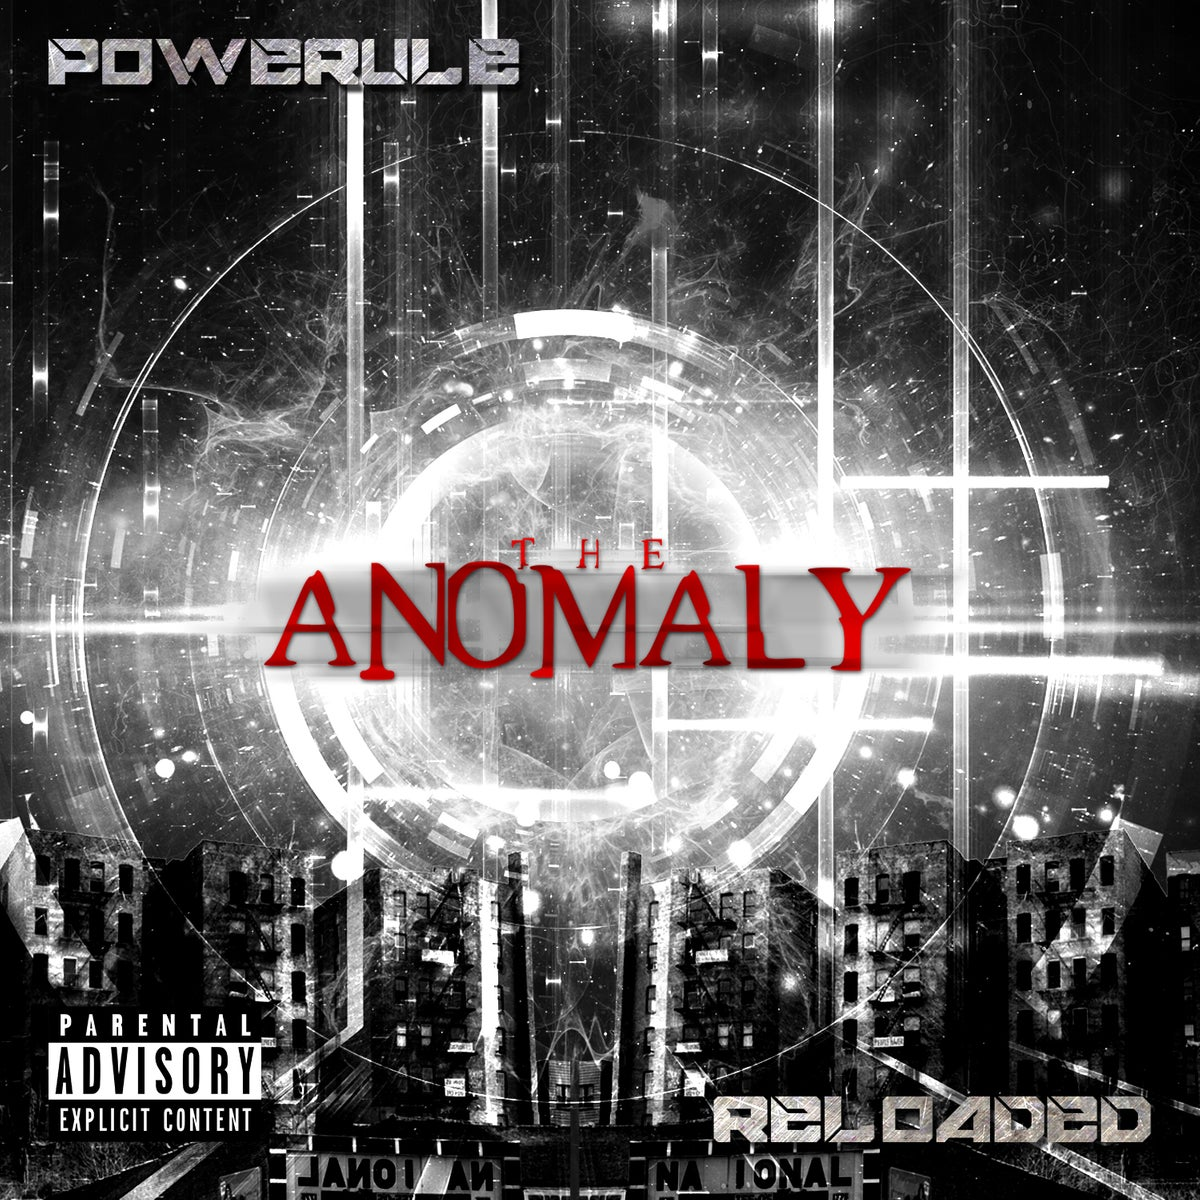 The+Anomaly+1500+x+1500+Front-1.jpg